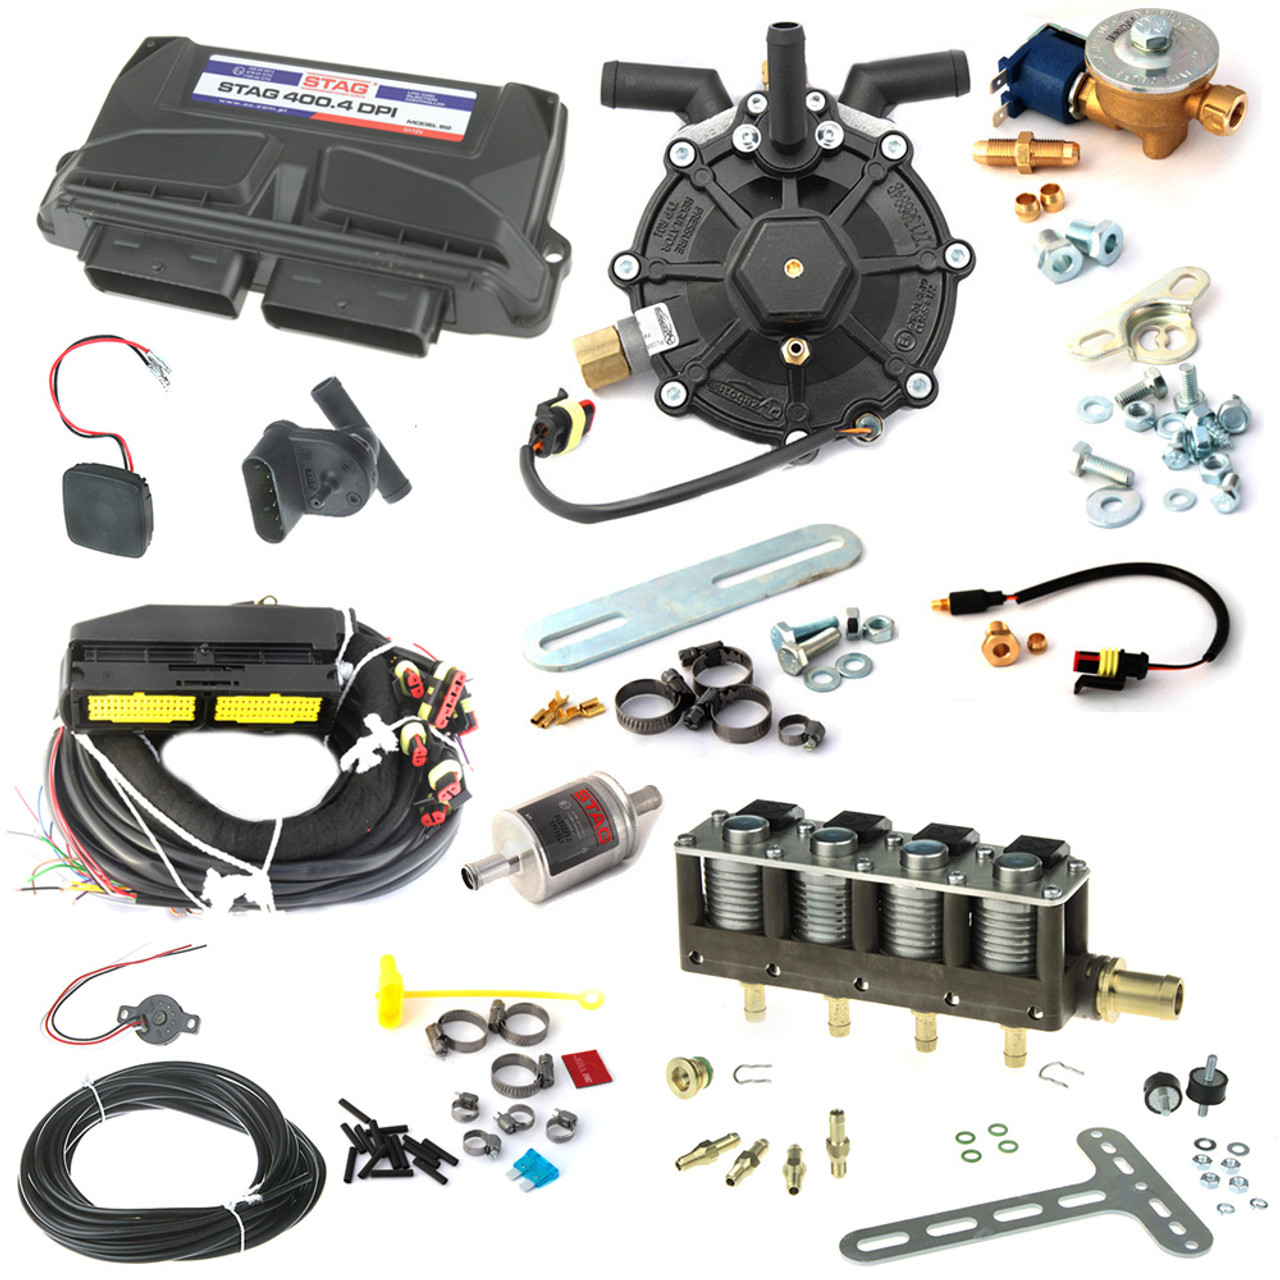 4CYL AC STAG Direct Injection Kit up to 150HP